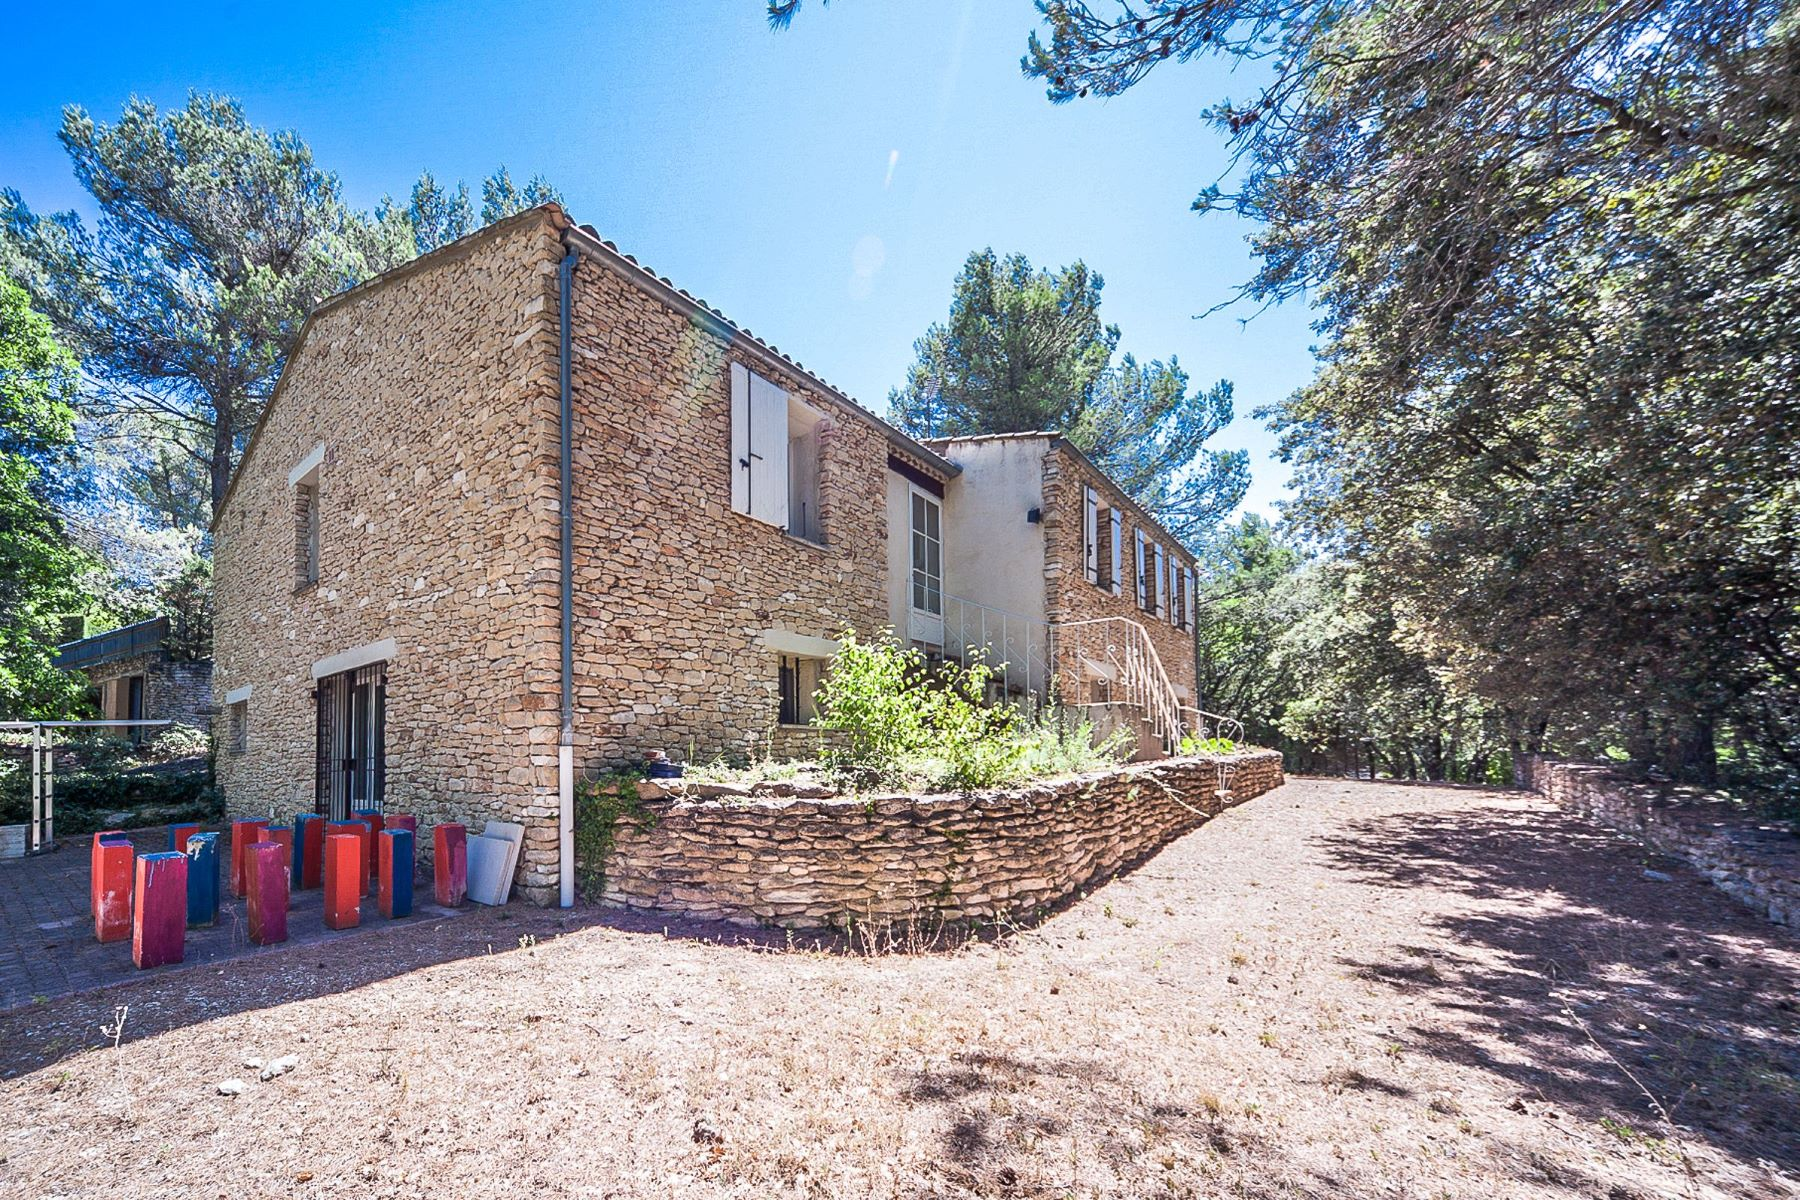 Single Family Home for Sale at Traditional home in Provence Menerbes, Provence-Alpes-Cote D'Azur, 84560 France